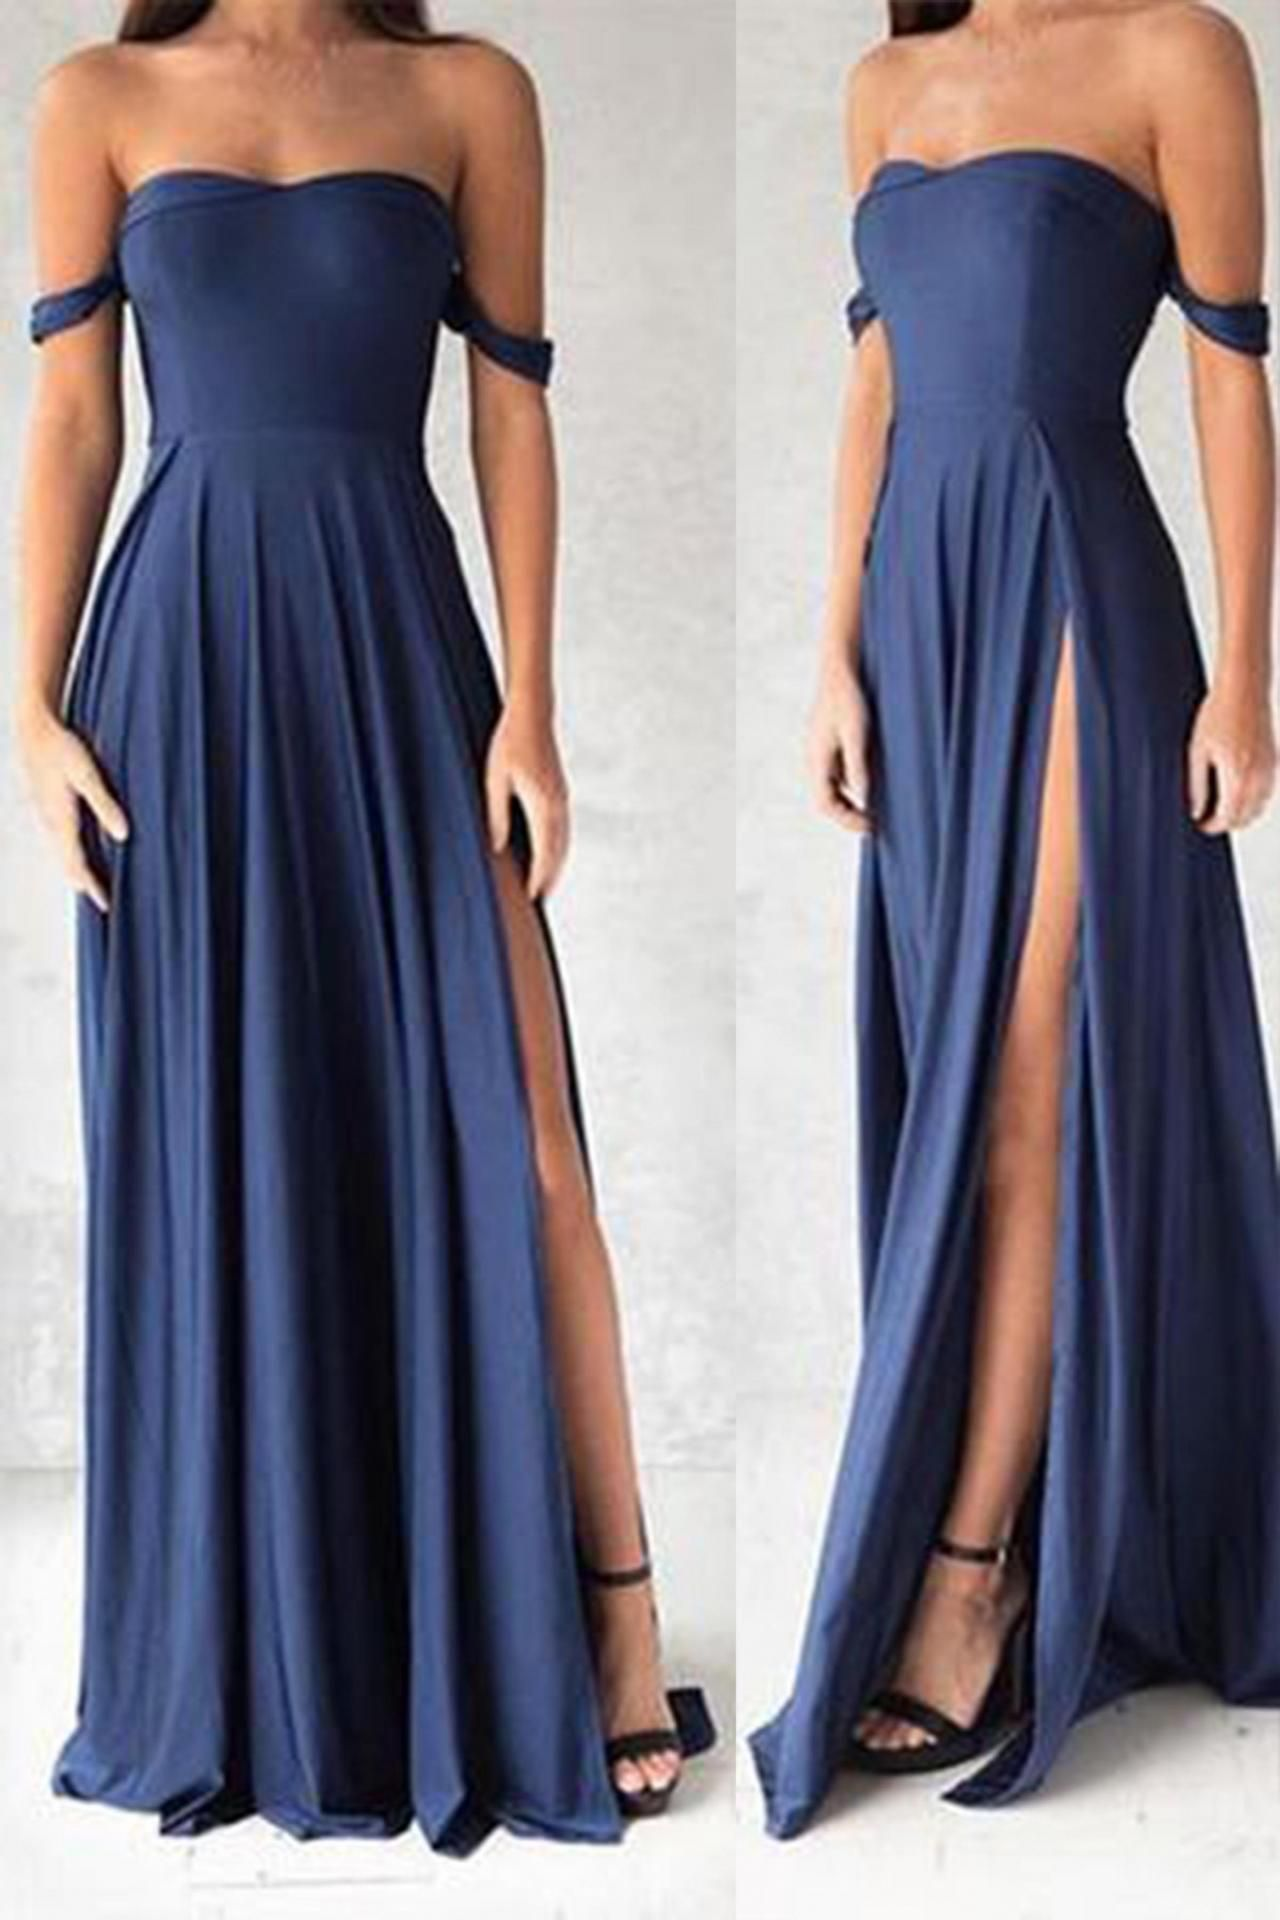 ed96d4697f5 Sexy Blue Chiffon Off-shoulder Sweetheart A-line Long Prom Dress ...